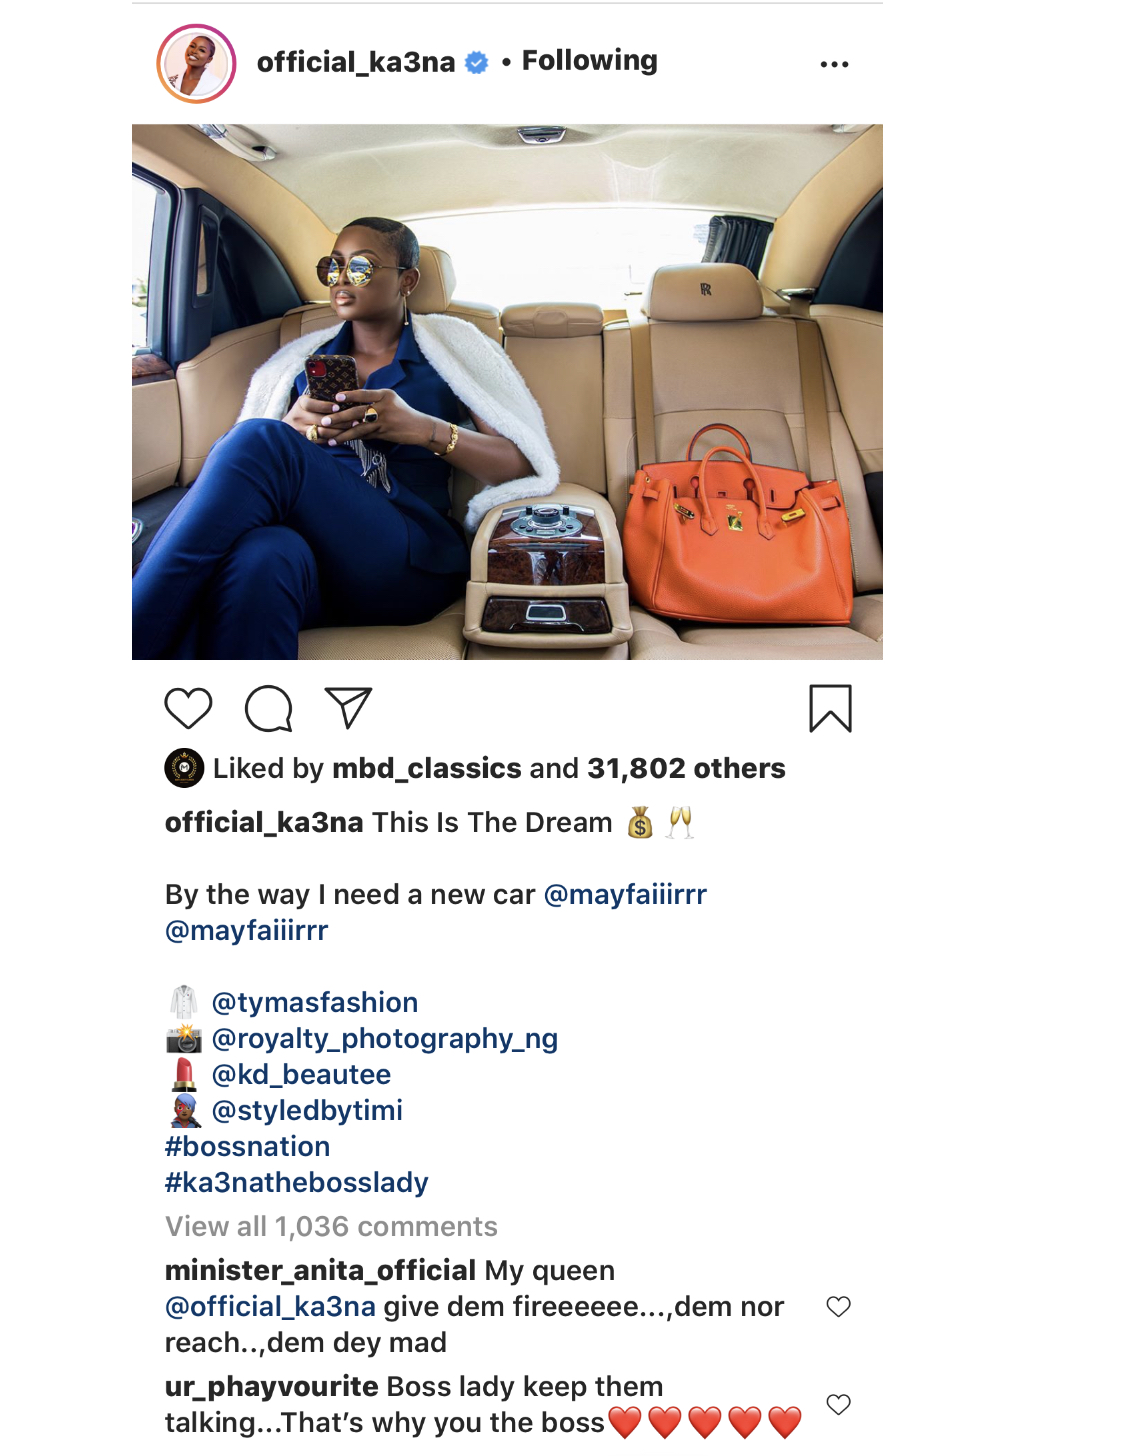 The reality TV star's post